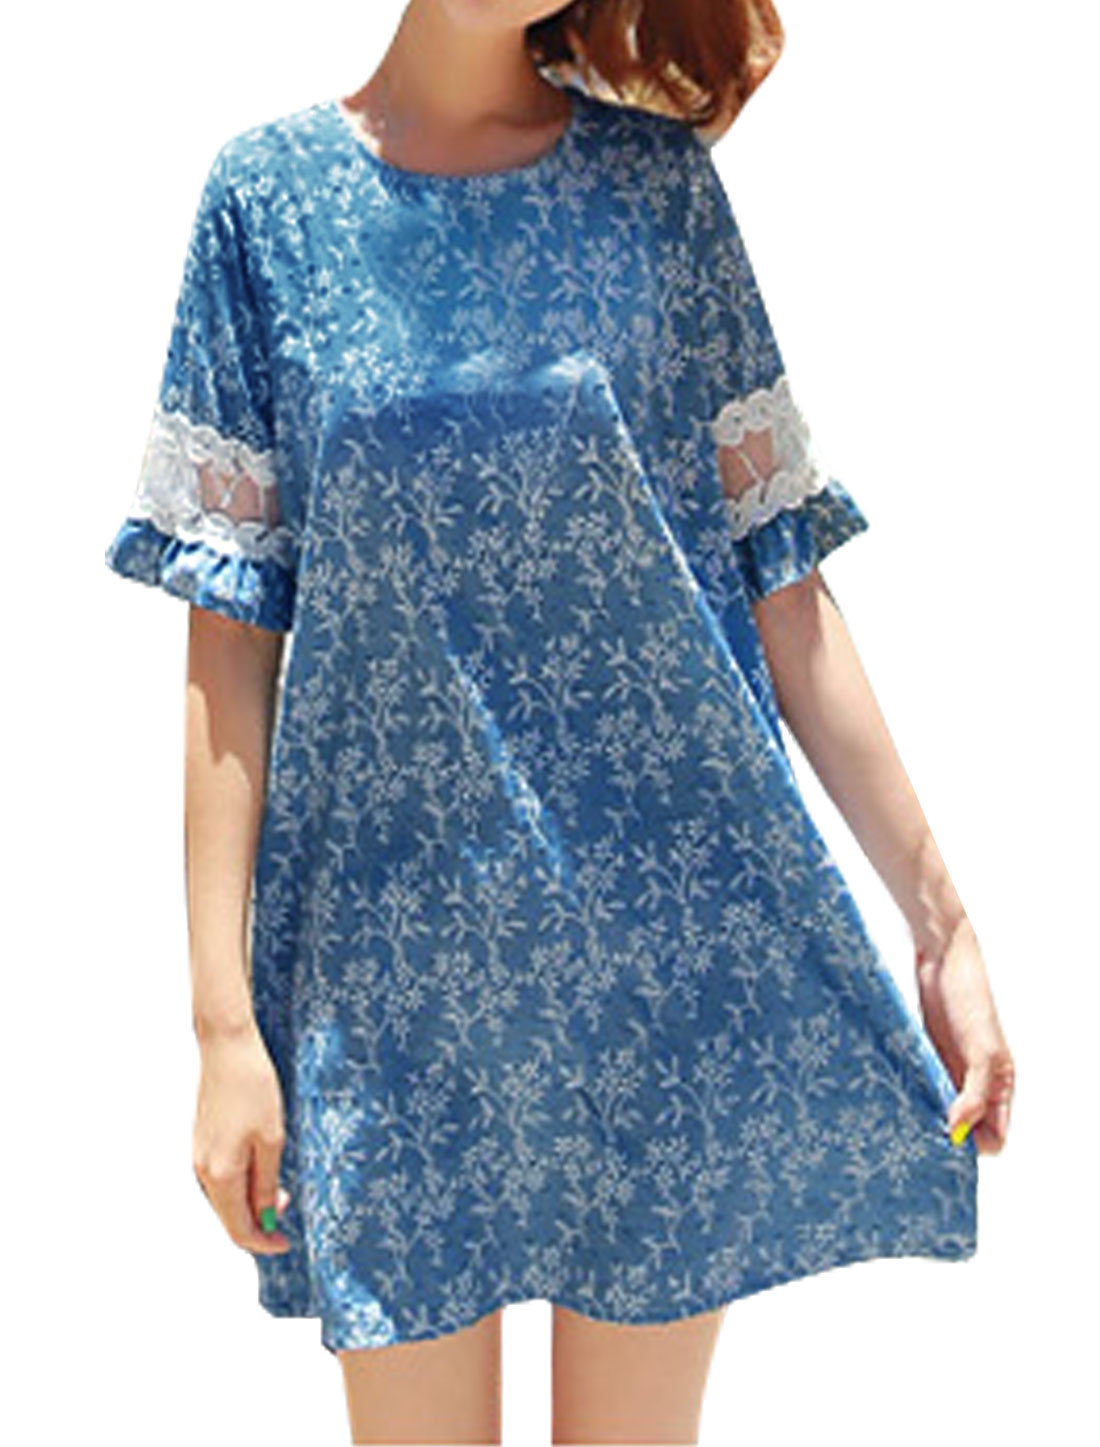 Women Floral Embroidery Mesh Panel Tunic Dress w String Blue XS